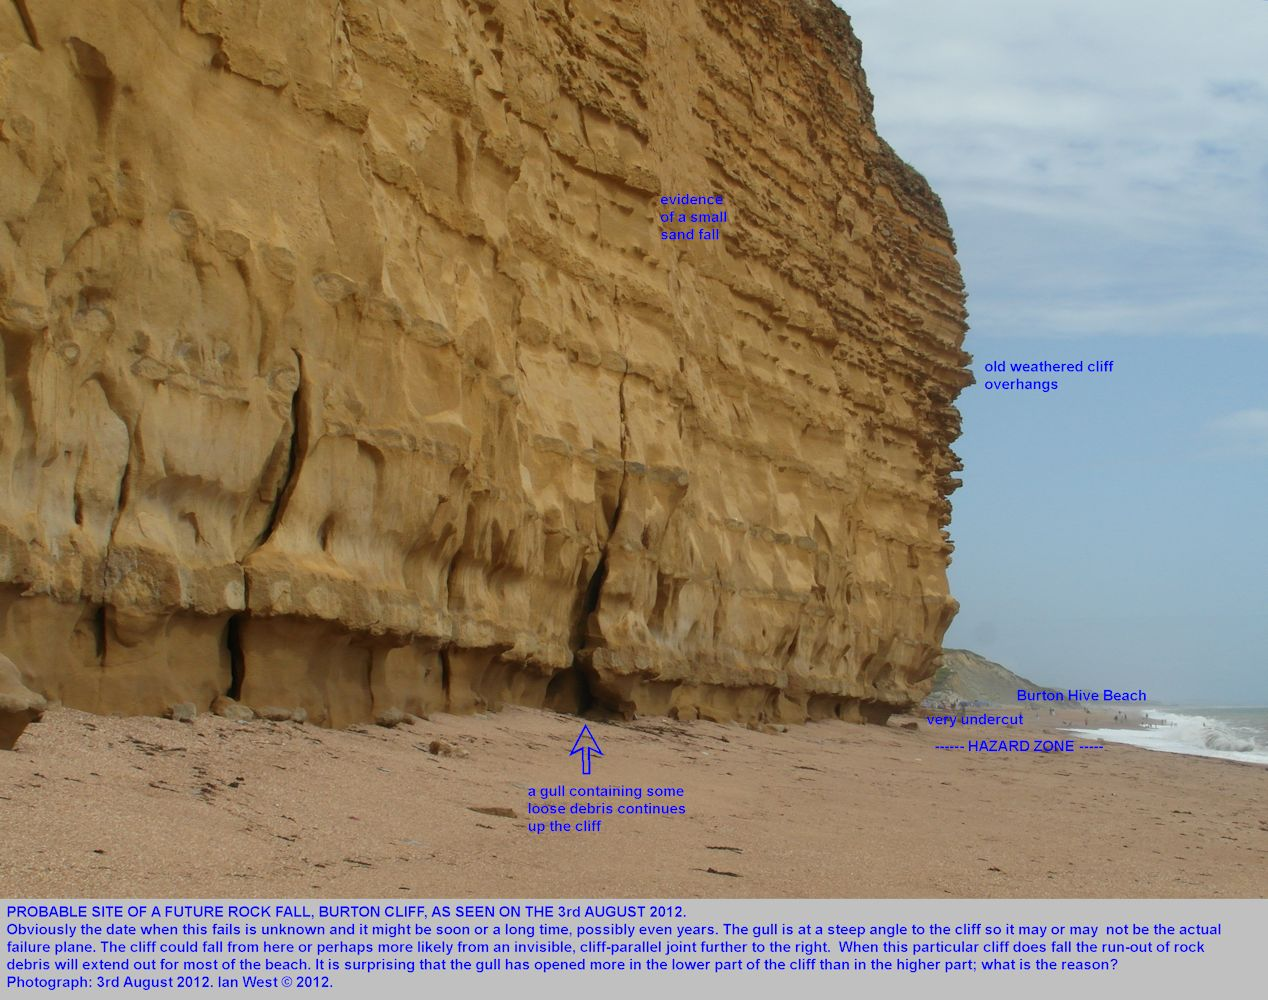 An undercut and overhanging cliff near Burton Hive Beach,Burton Bradstock, Dorset, a site of a future rock fall